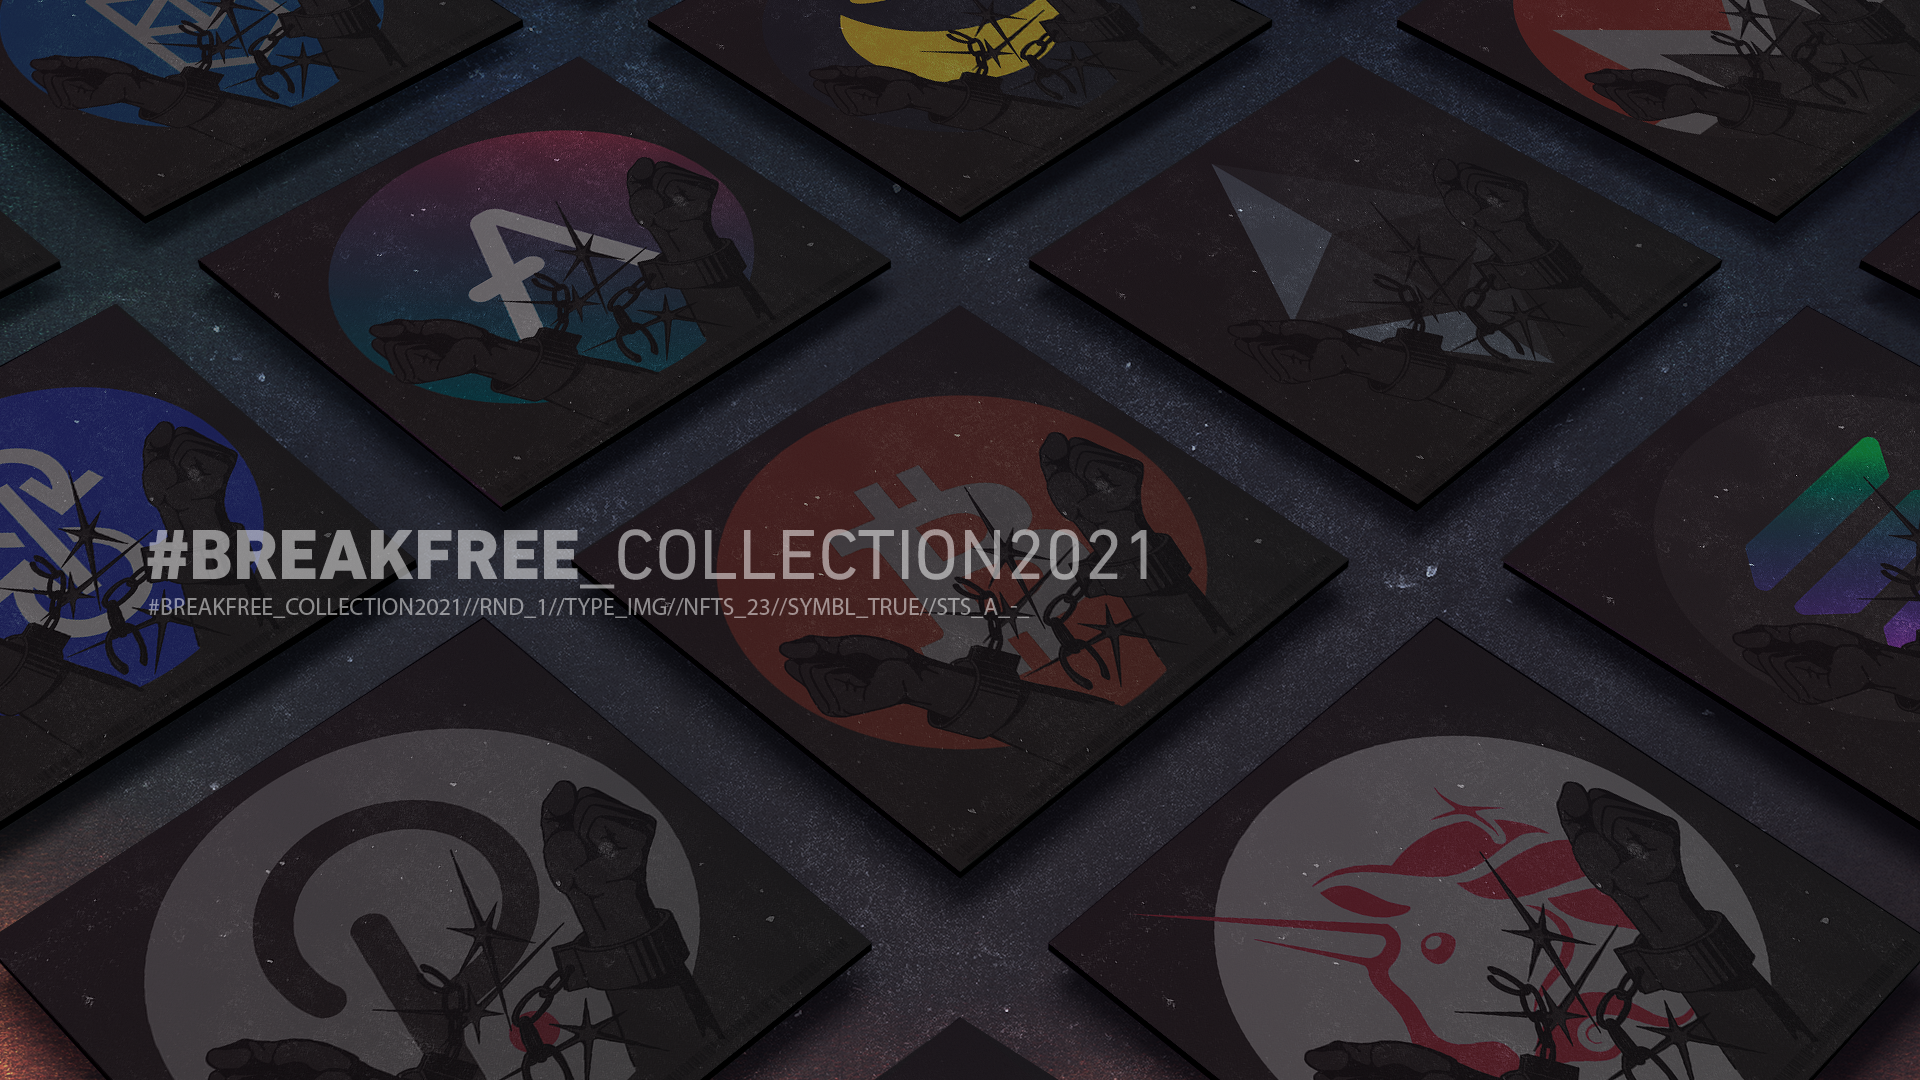 #breakfree crypto NFT collection